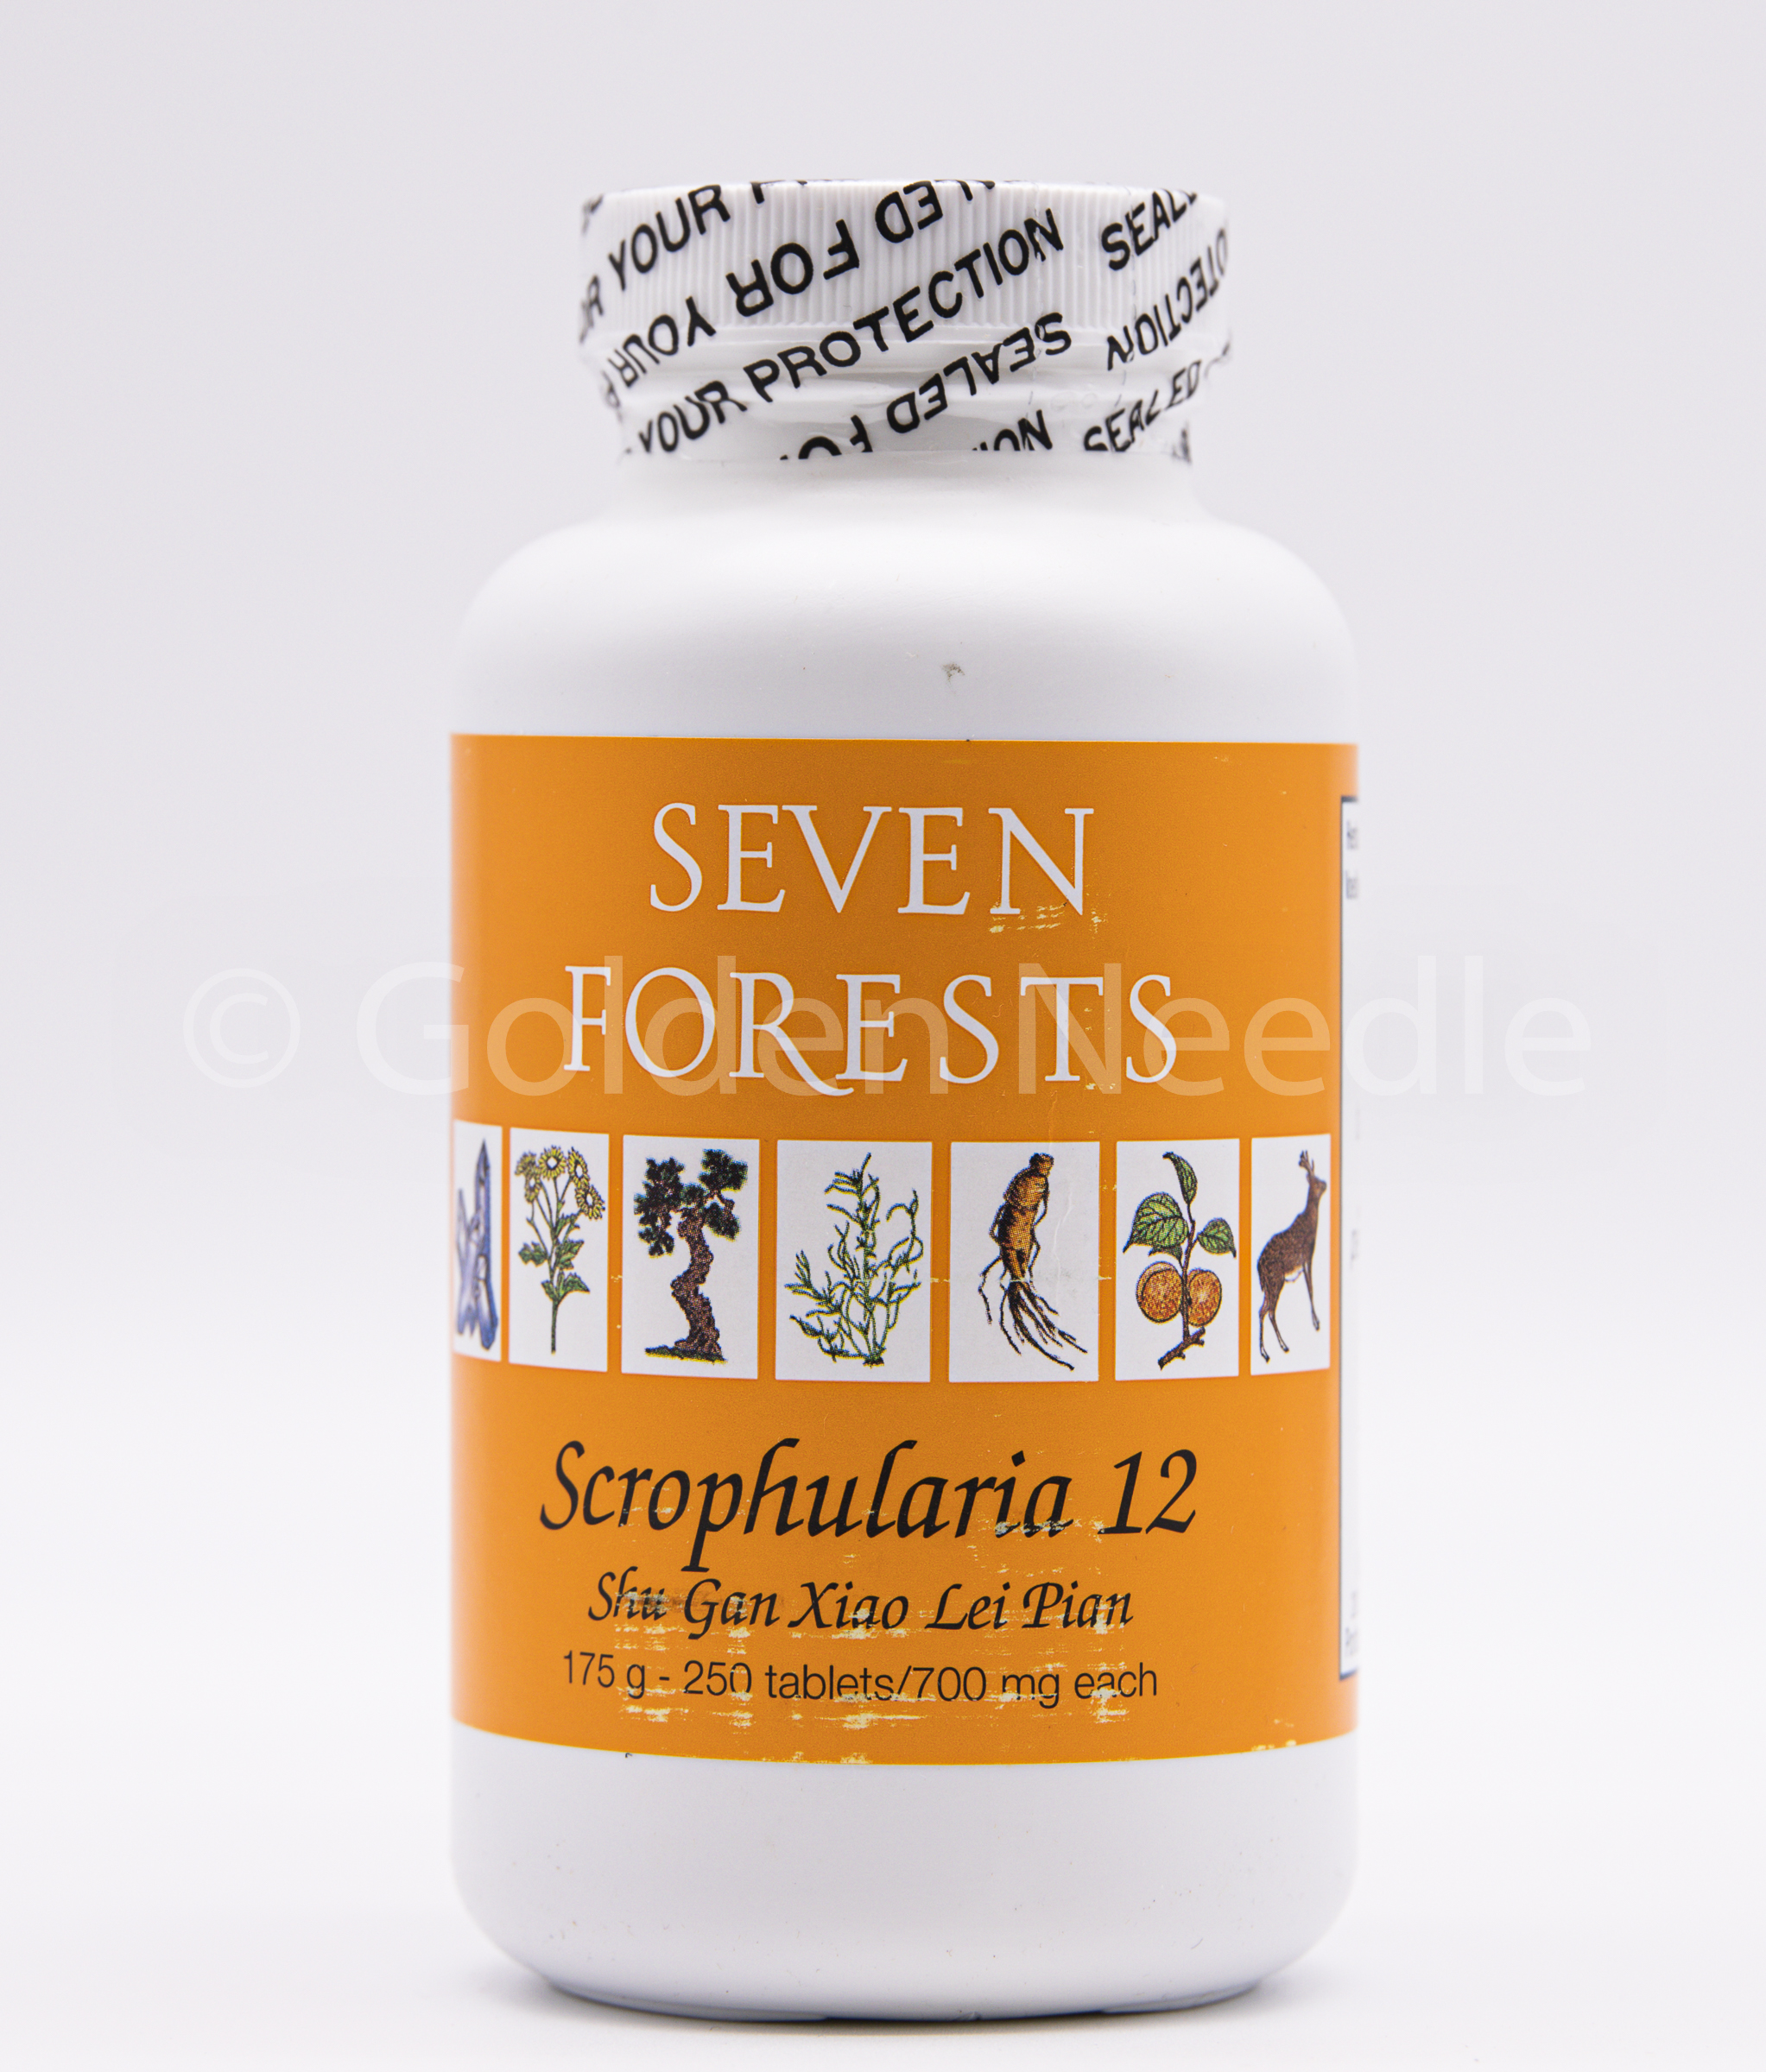 Scrophularia 12, 250 tablets